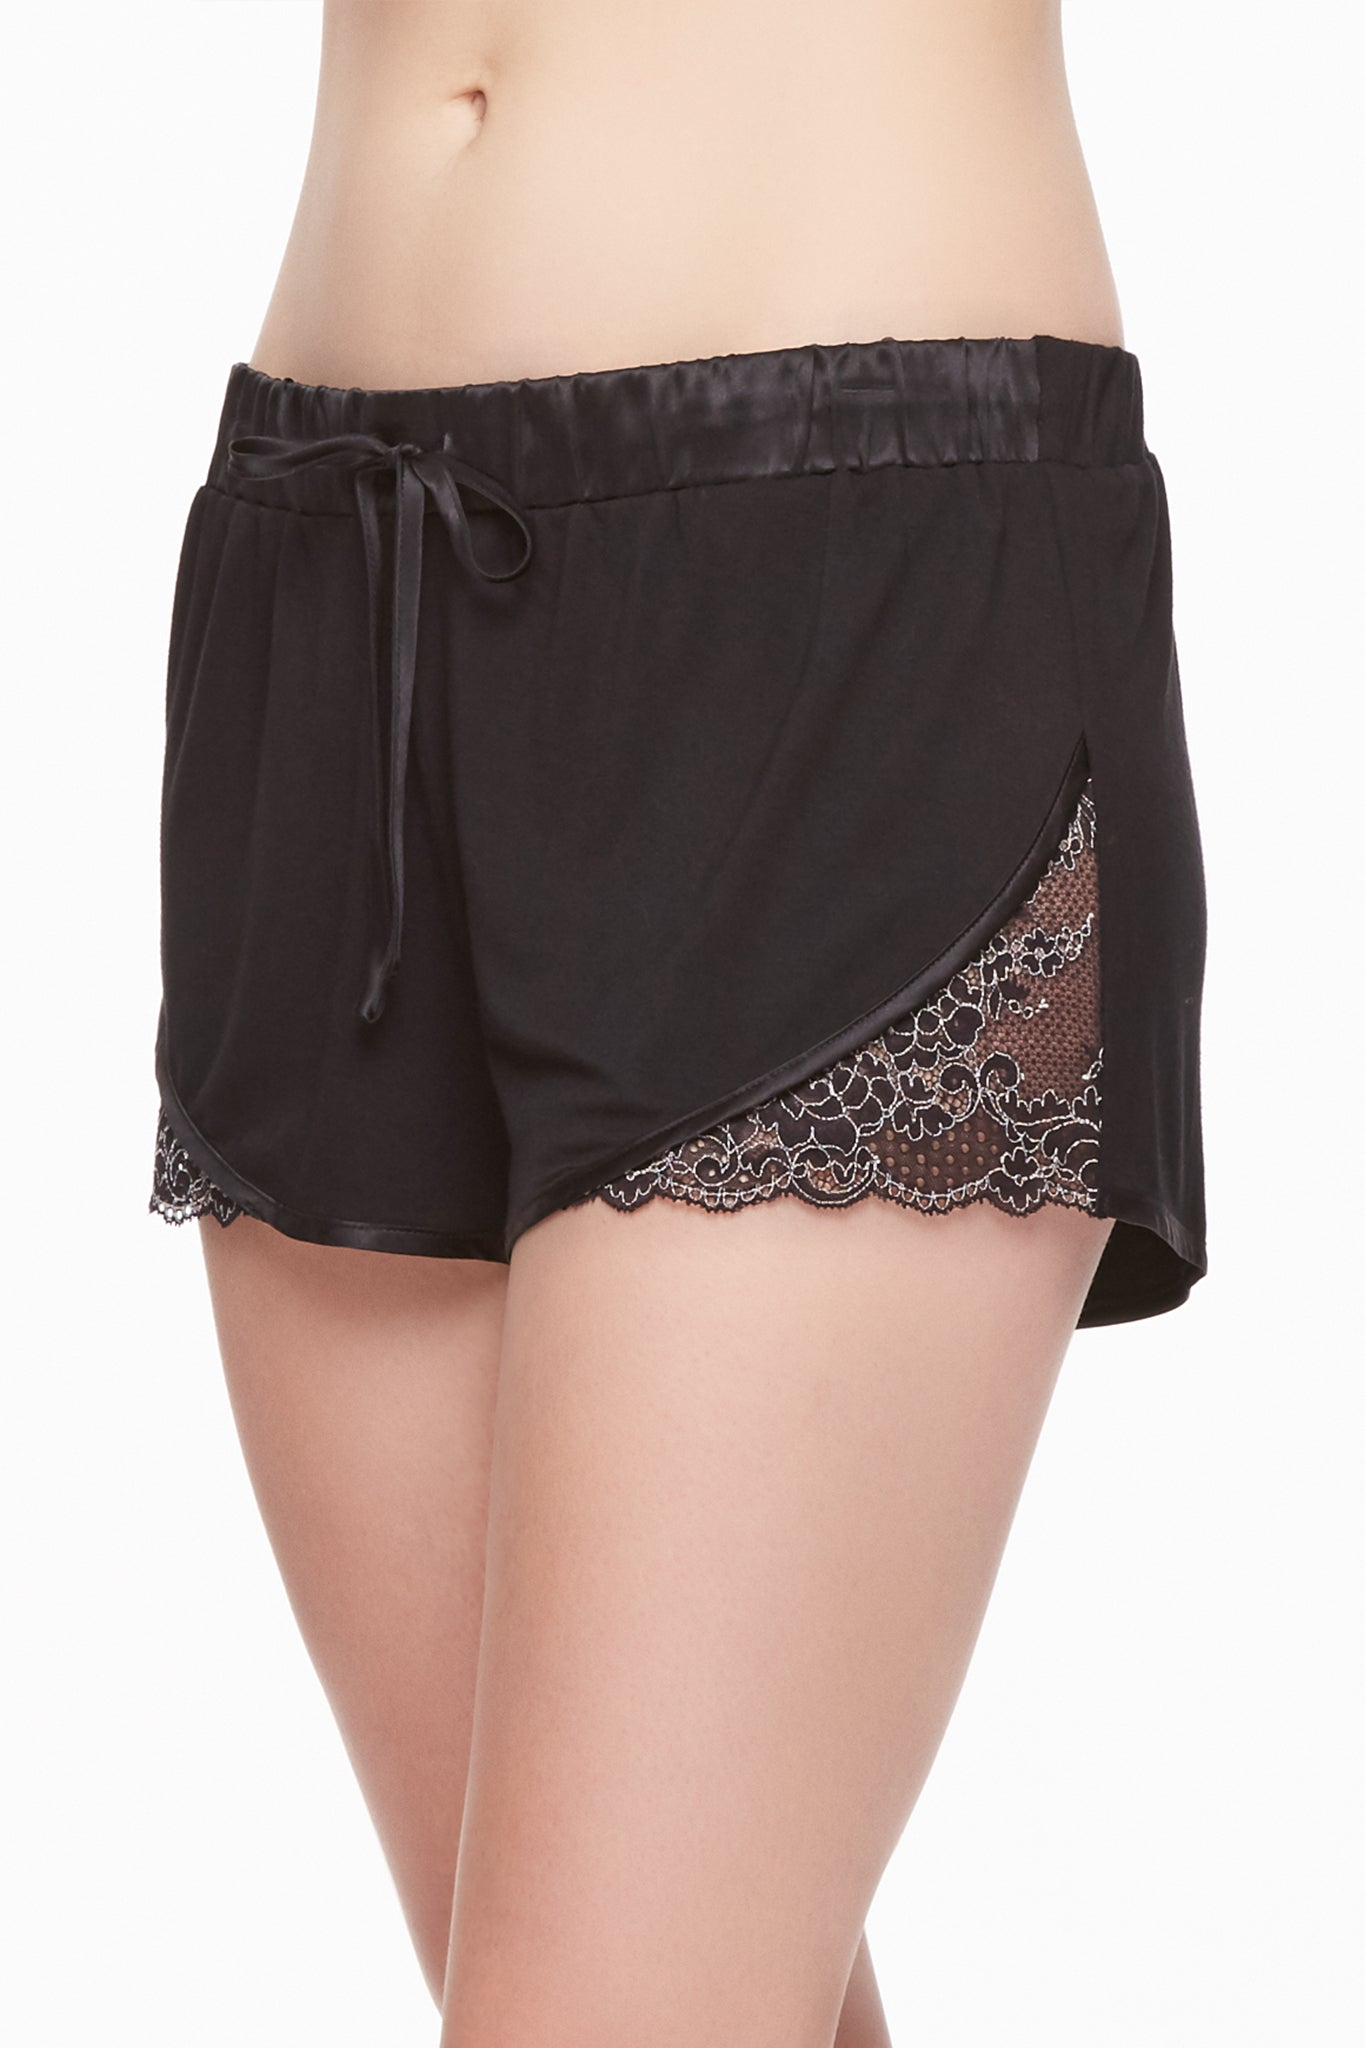 Winter Escapes Short with Lace Insert and Silk trim